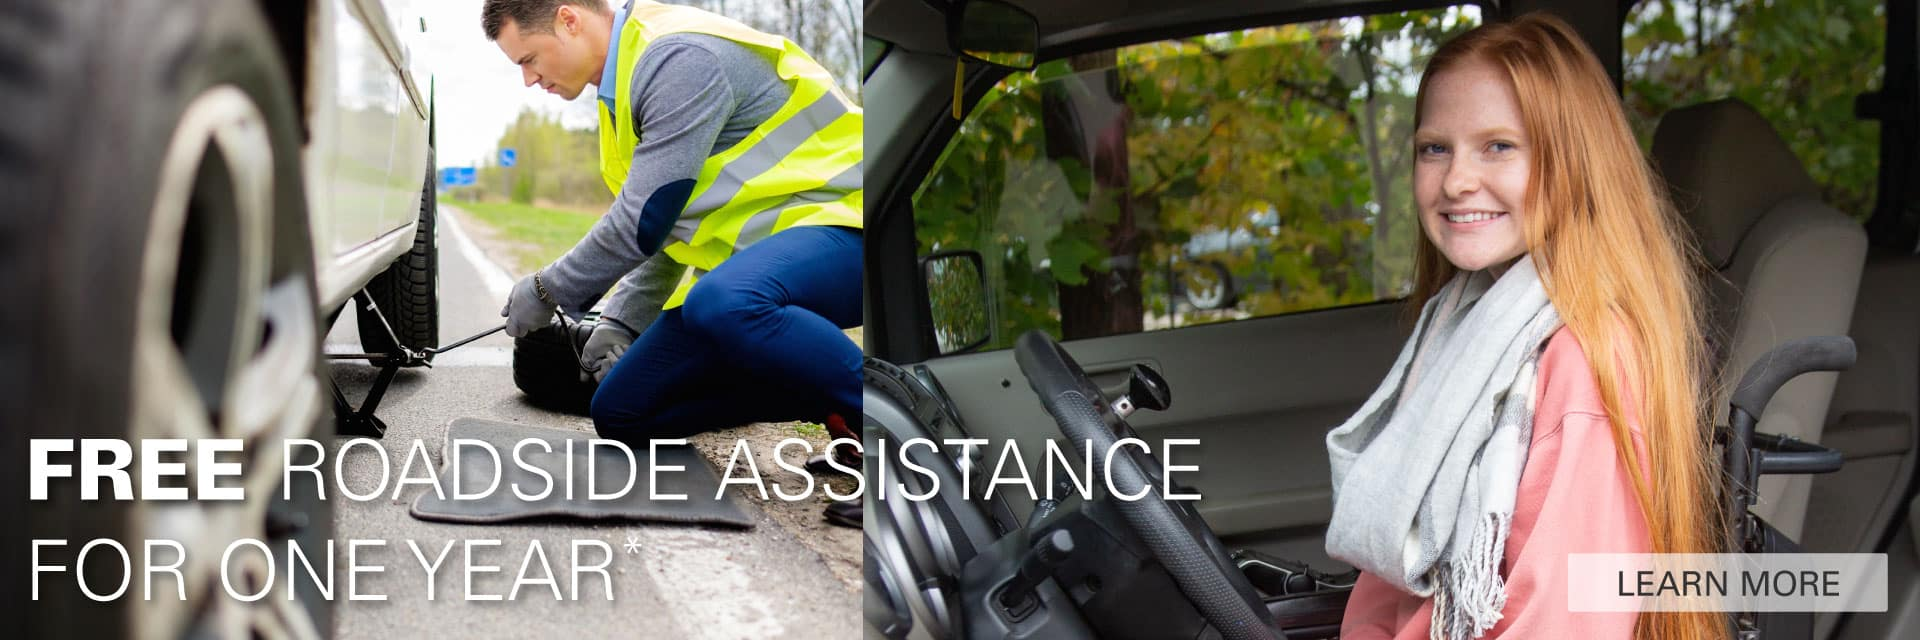 Free Roadside Assistance for a Year